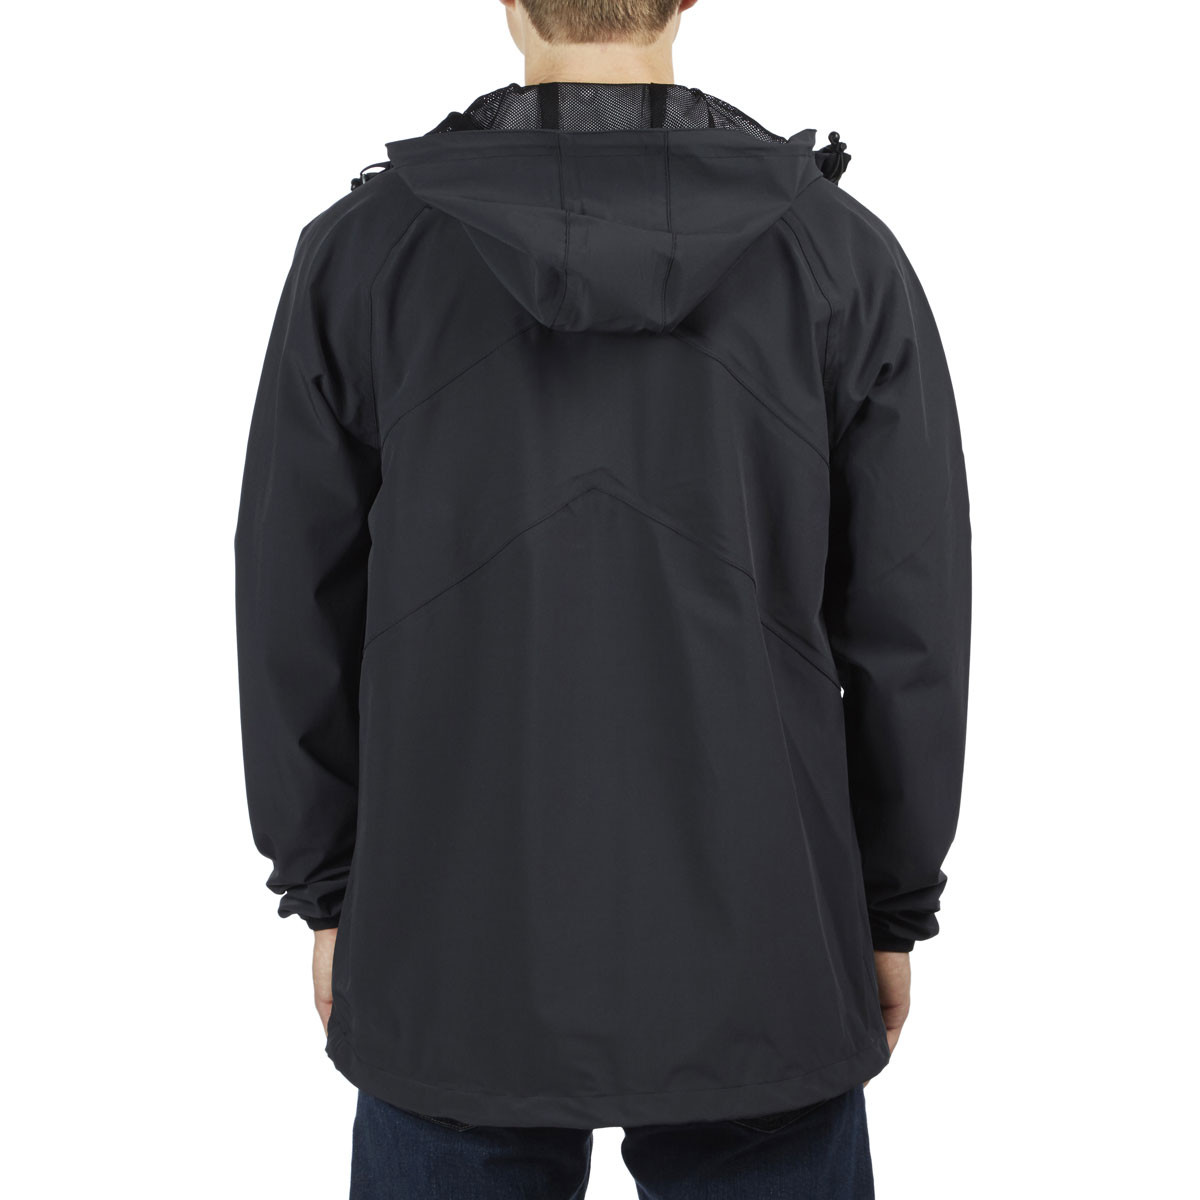 a84857a55 RVCA VA Windbreaker Jacket - Black